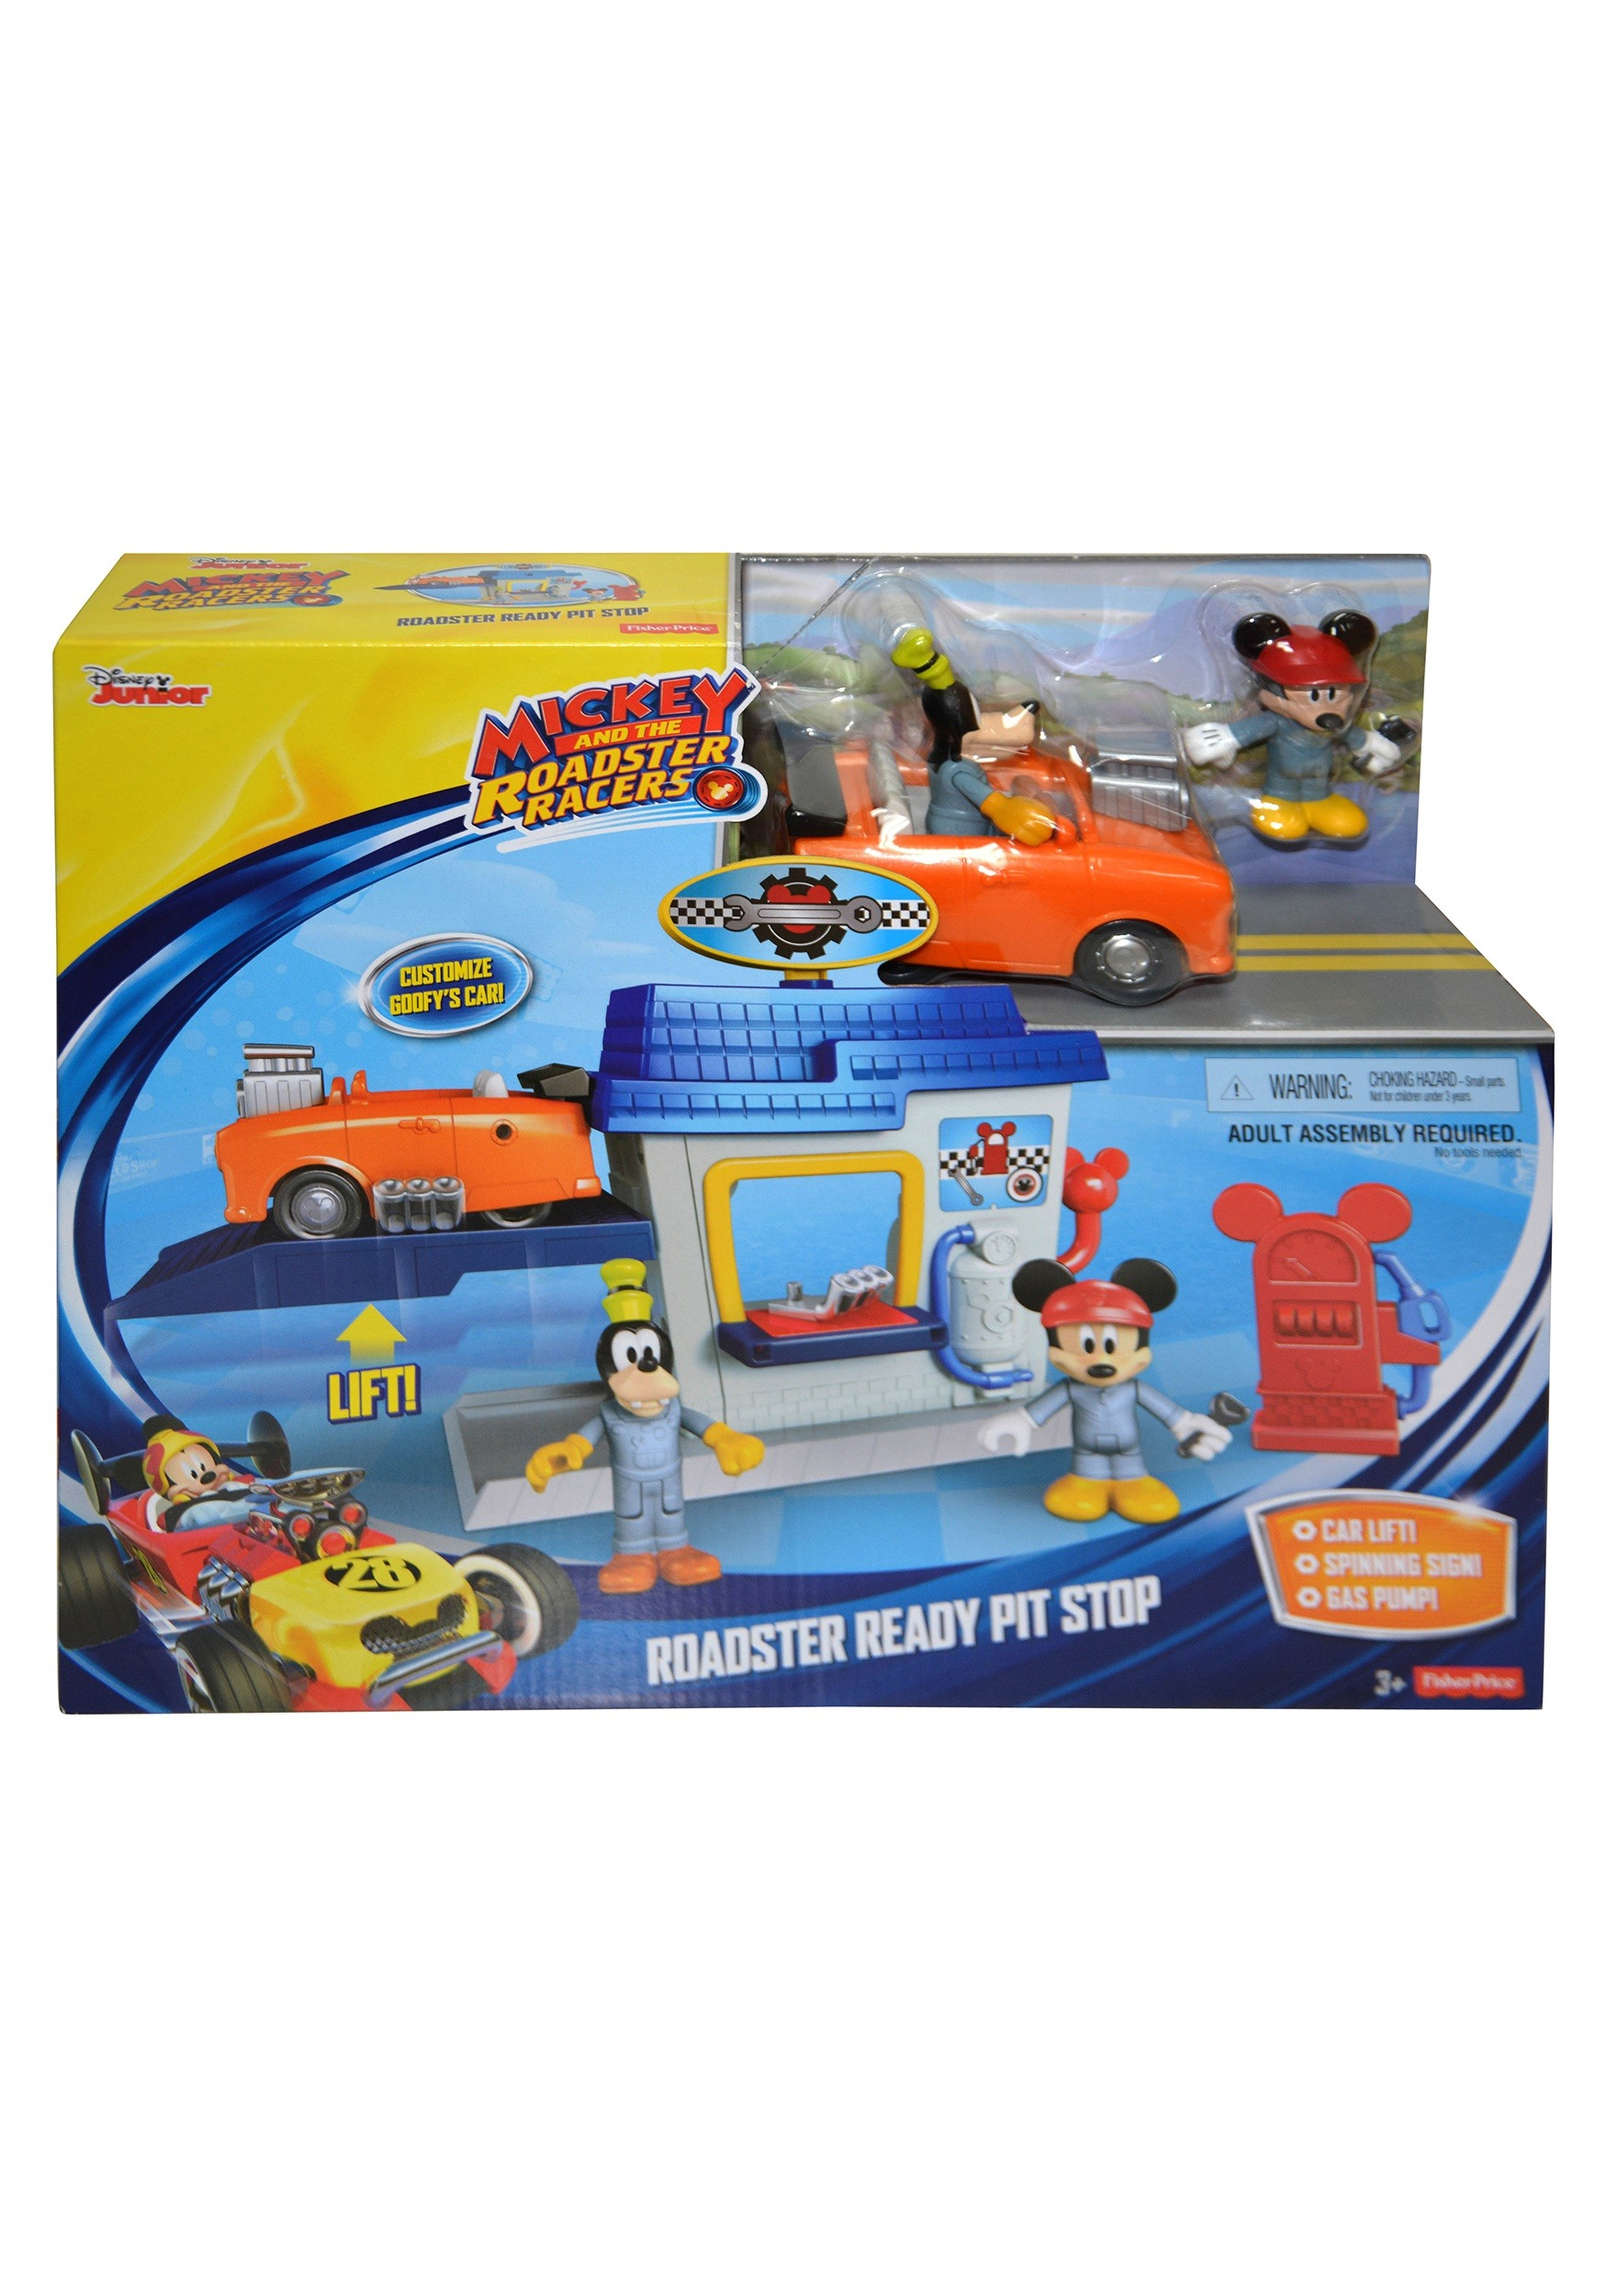 Disney Junior Mickey Roadster Racers Toys